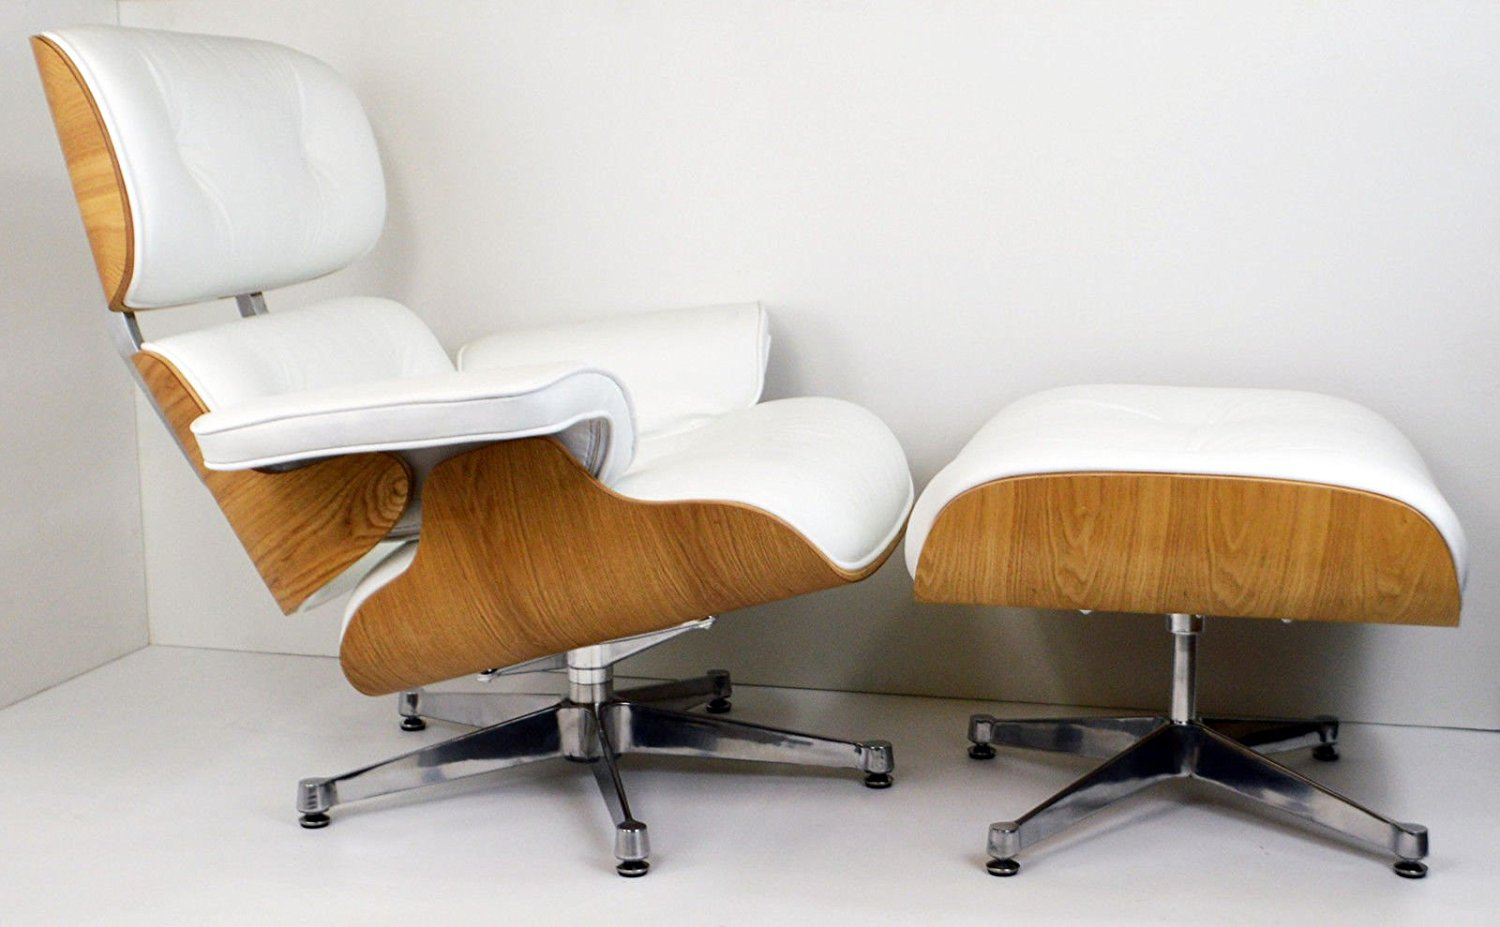 Eames lounge chair reproduction uk for Eames chair replica deutschland